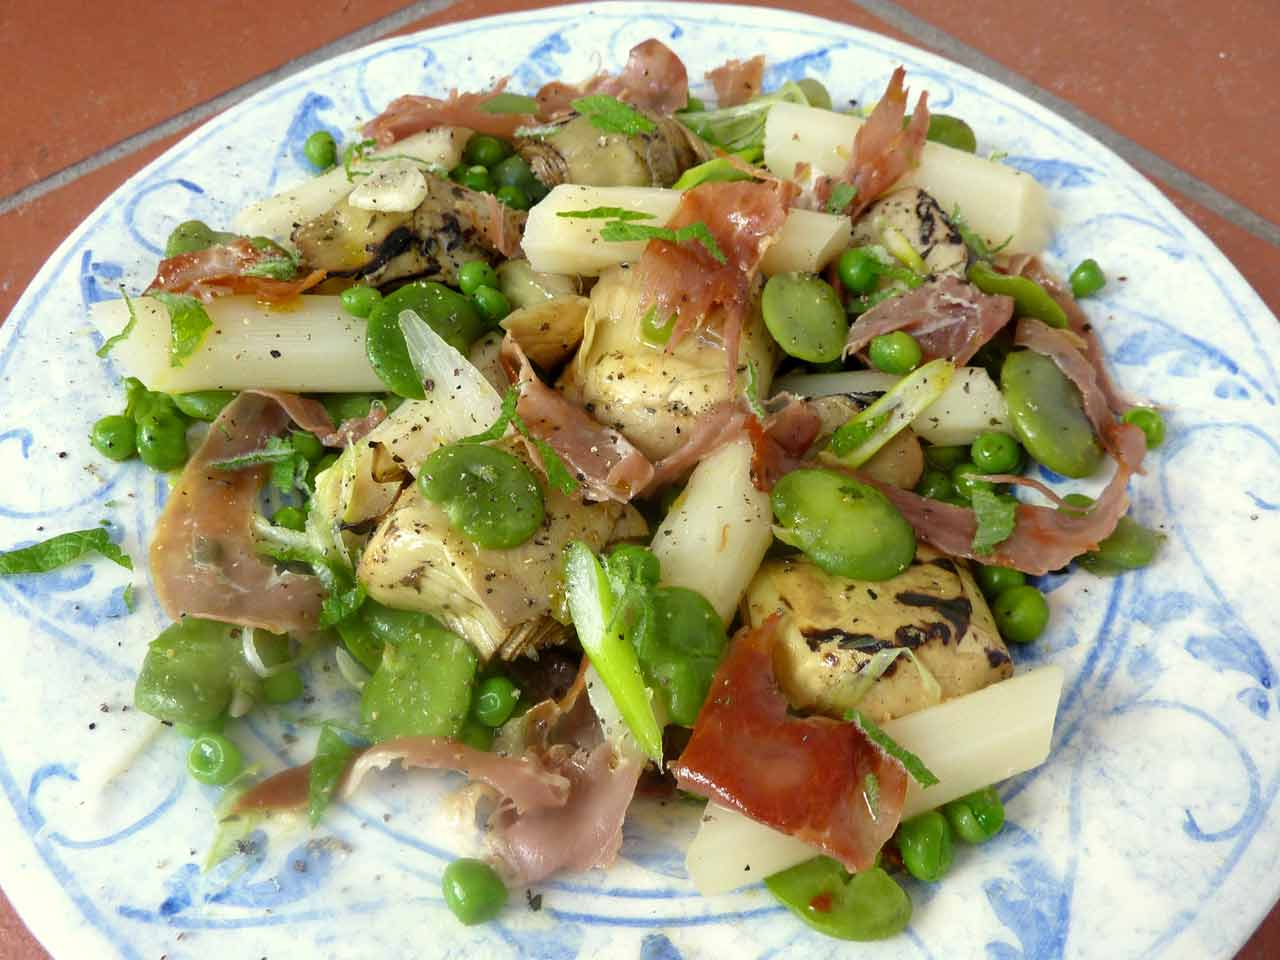 Judtih's artichoke and broad bean salad with prosciutto